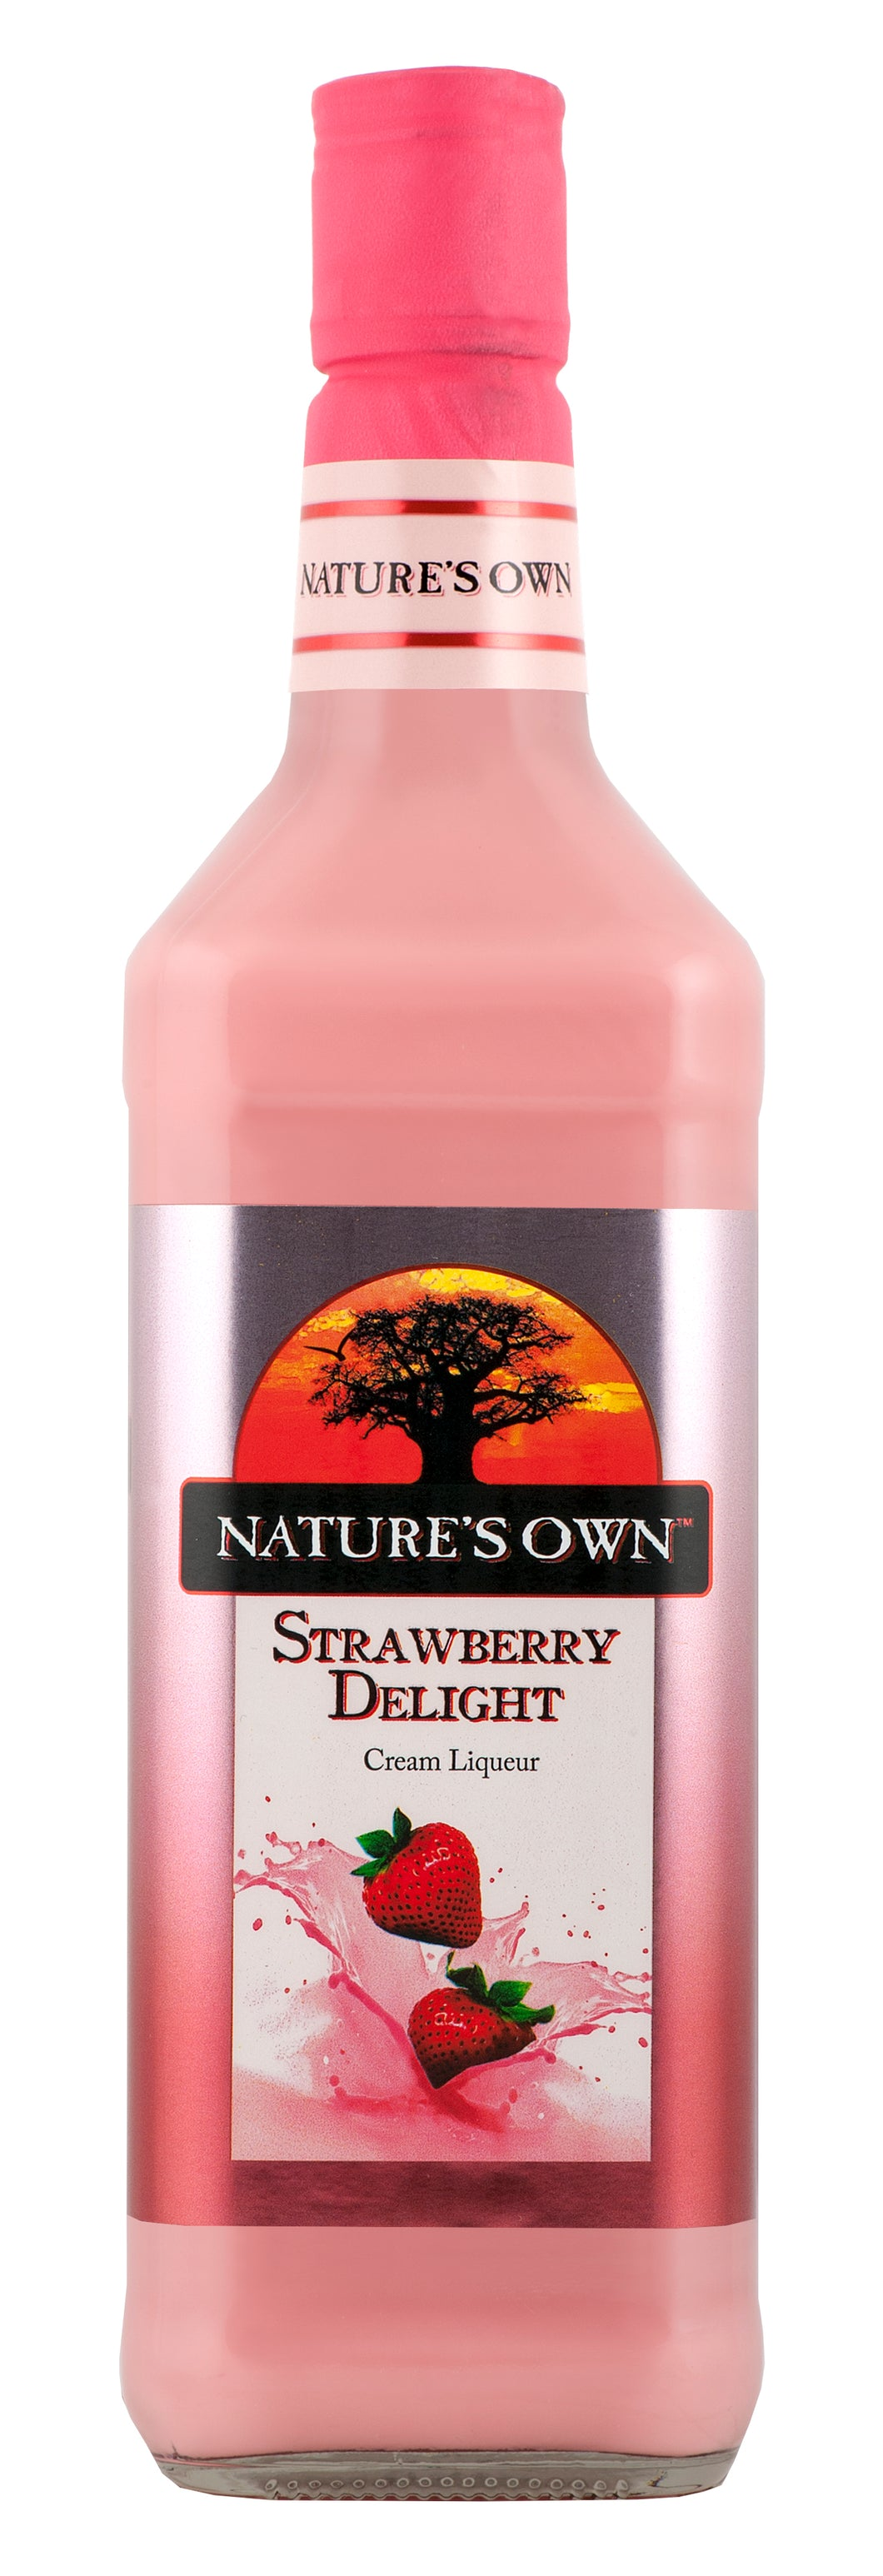 Nature's Own Strawberry Delight Cream Liqueur